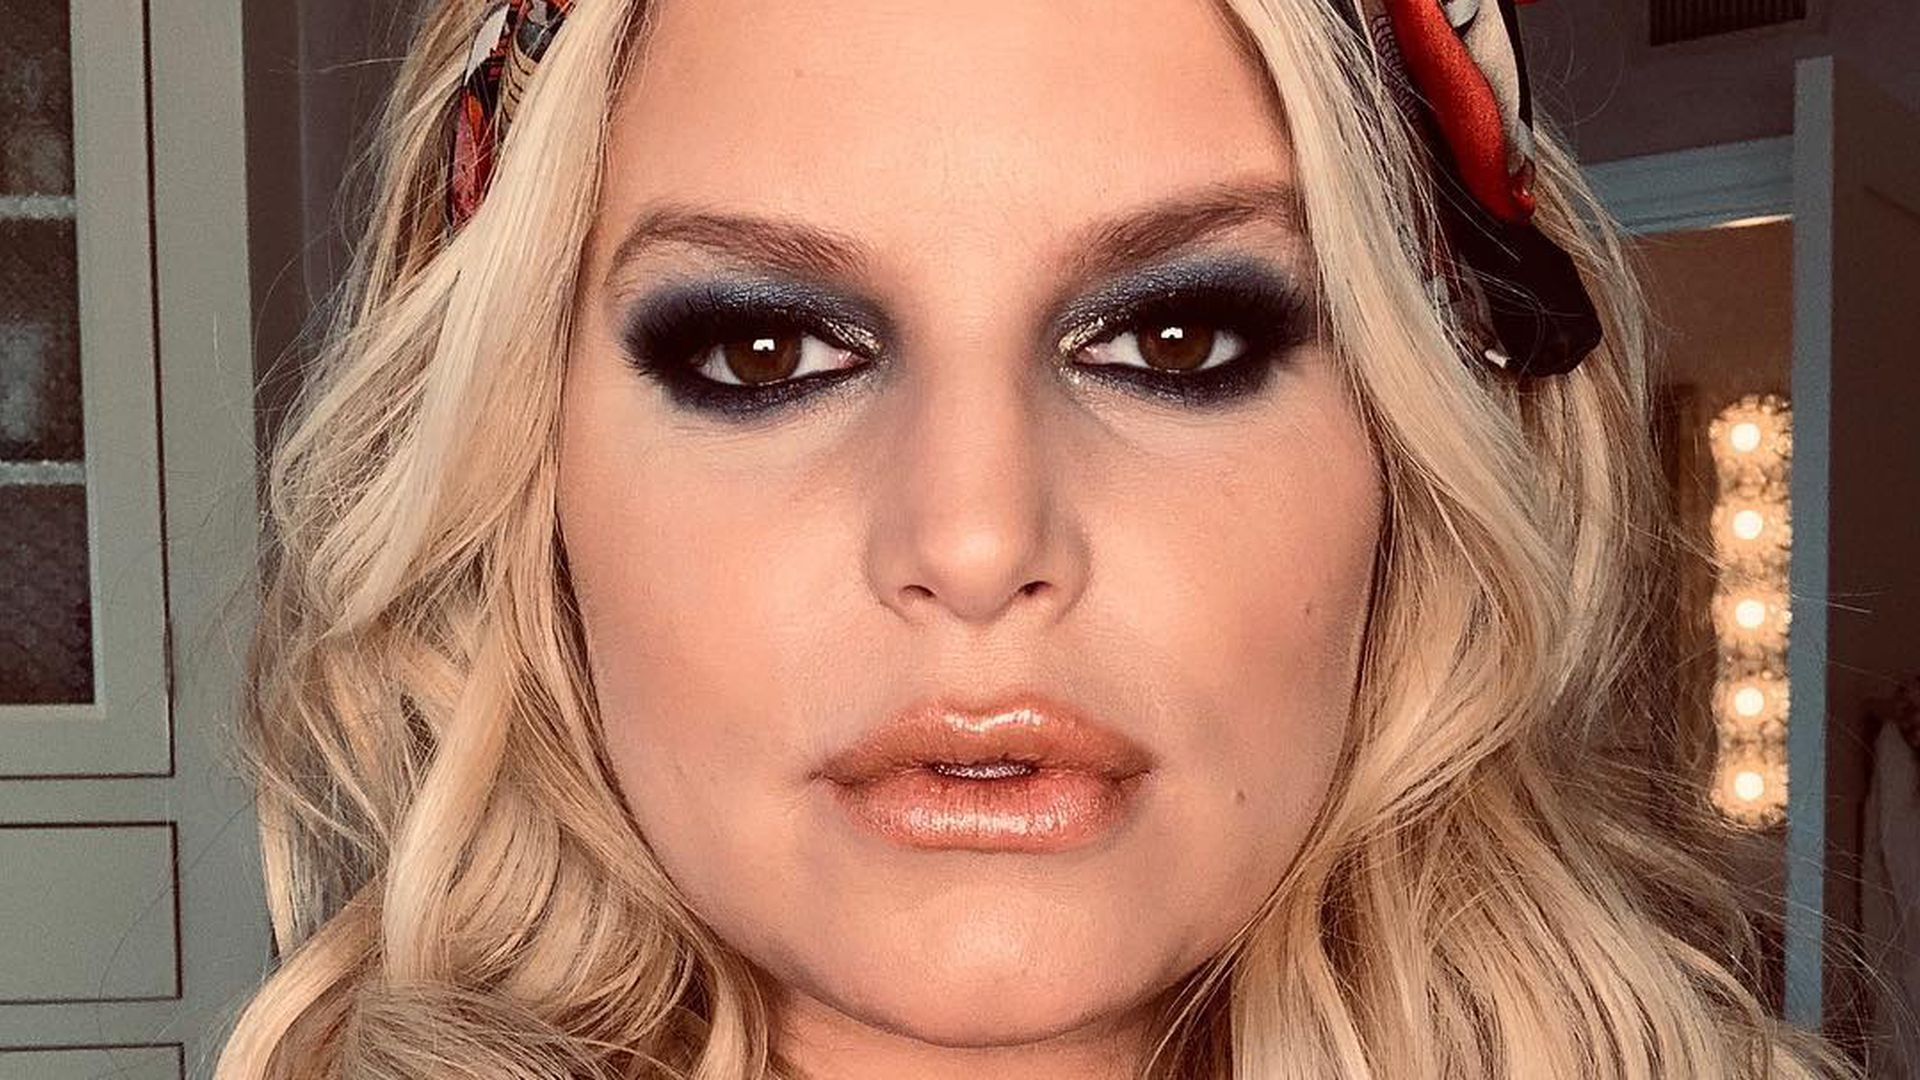 Photo of Sexueller Missbrauch: Jessica Simpson konfrontierte den Täter